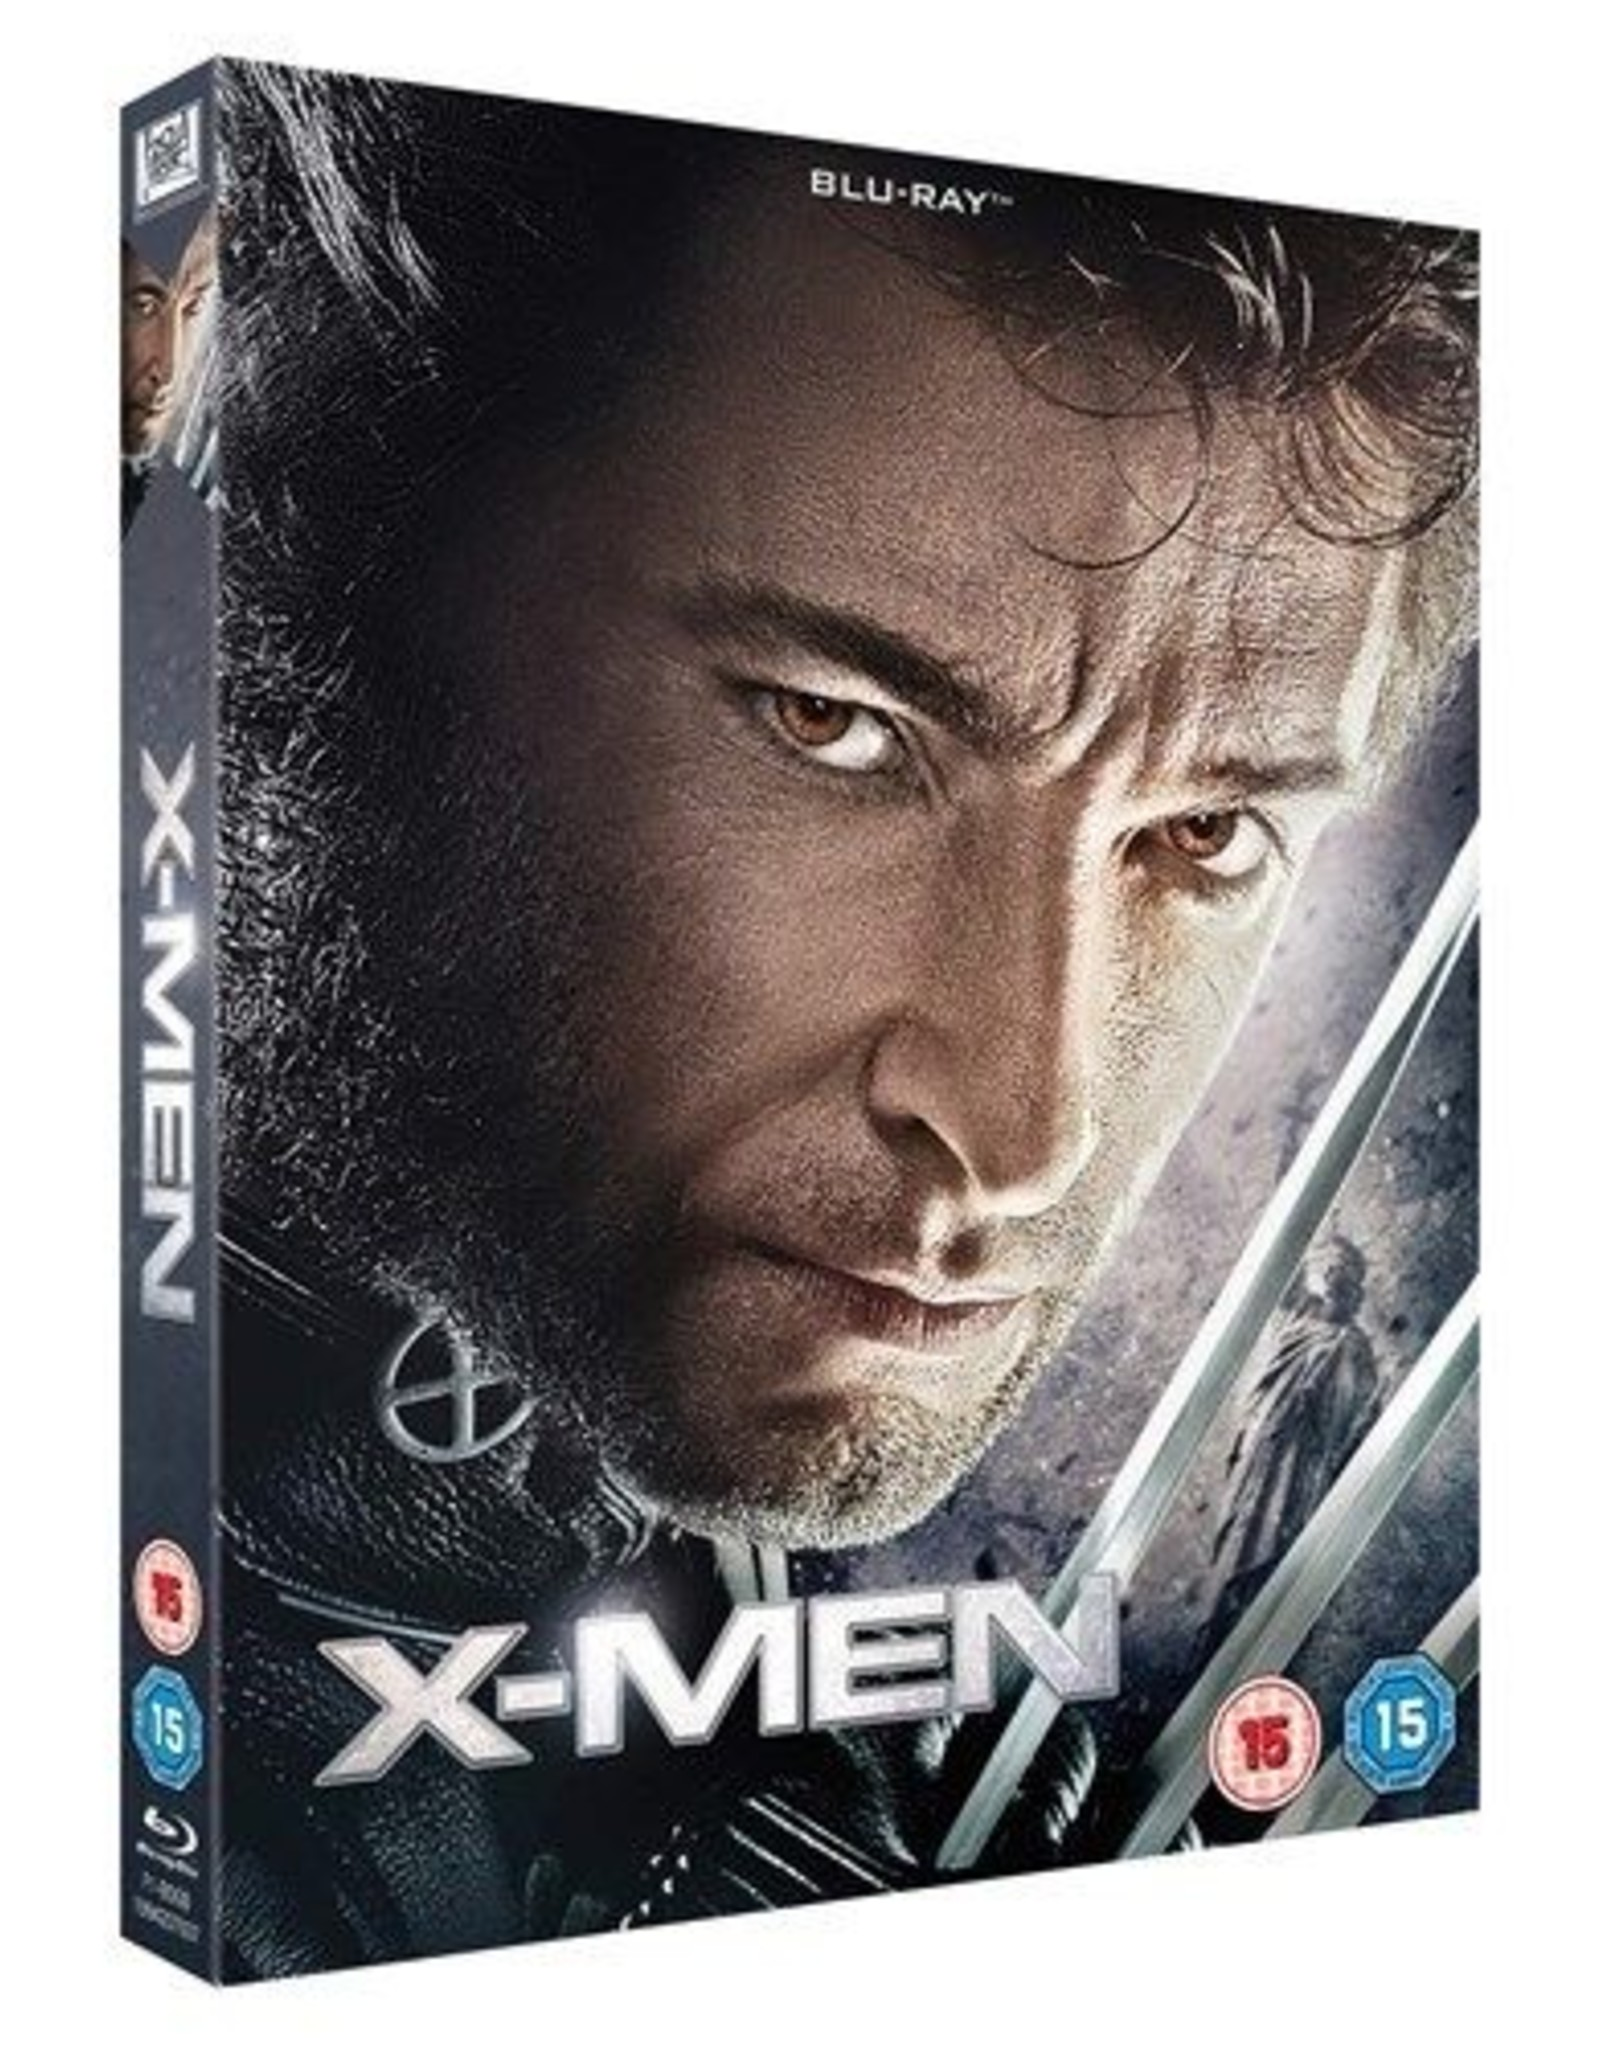 BluRay Movie X-Men